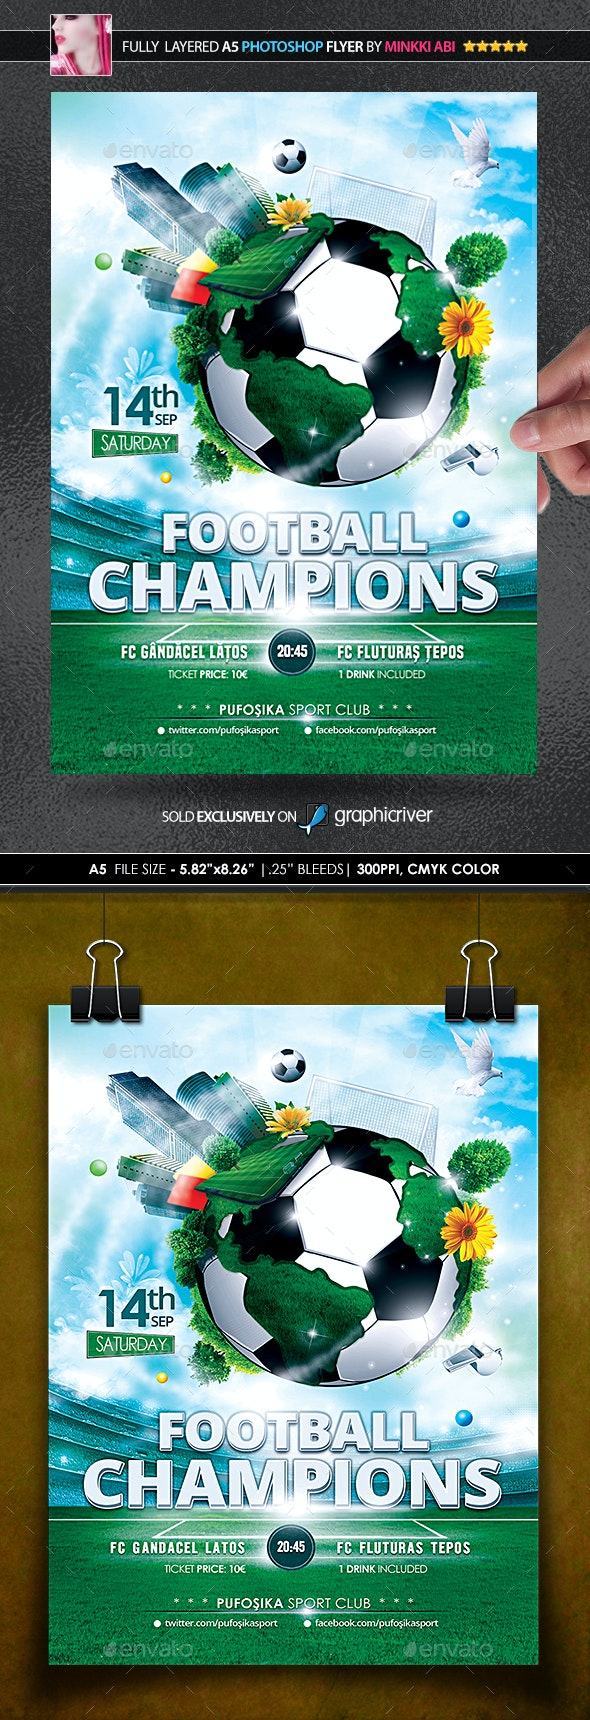 Football Champions Poster/Flyer - Events Flyers